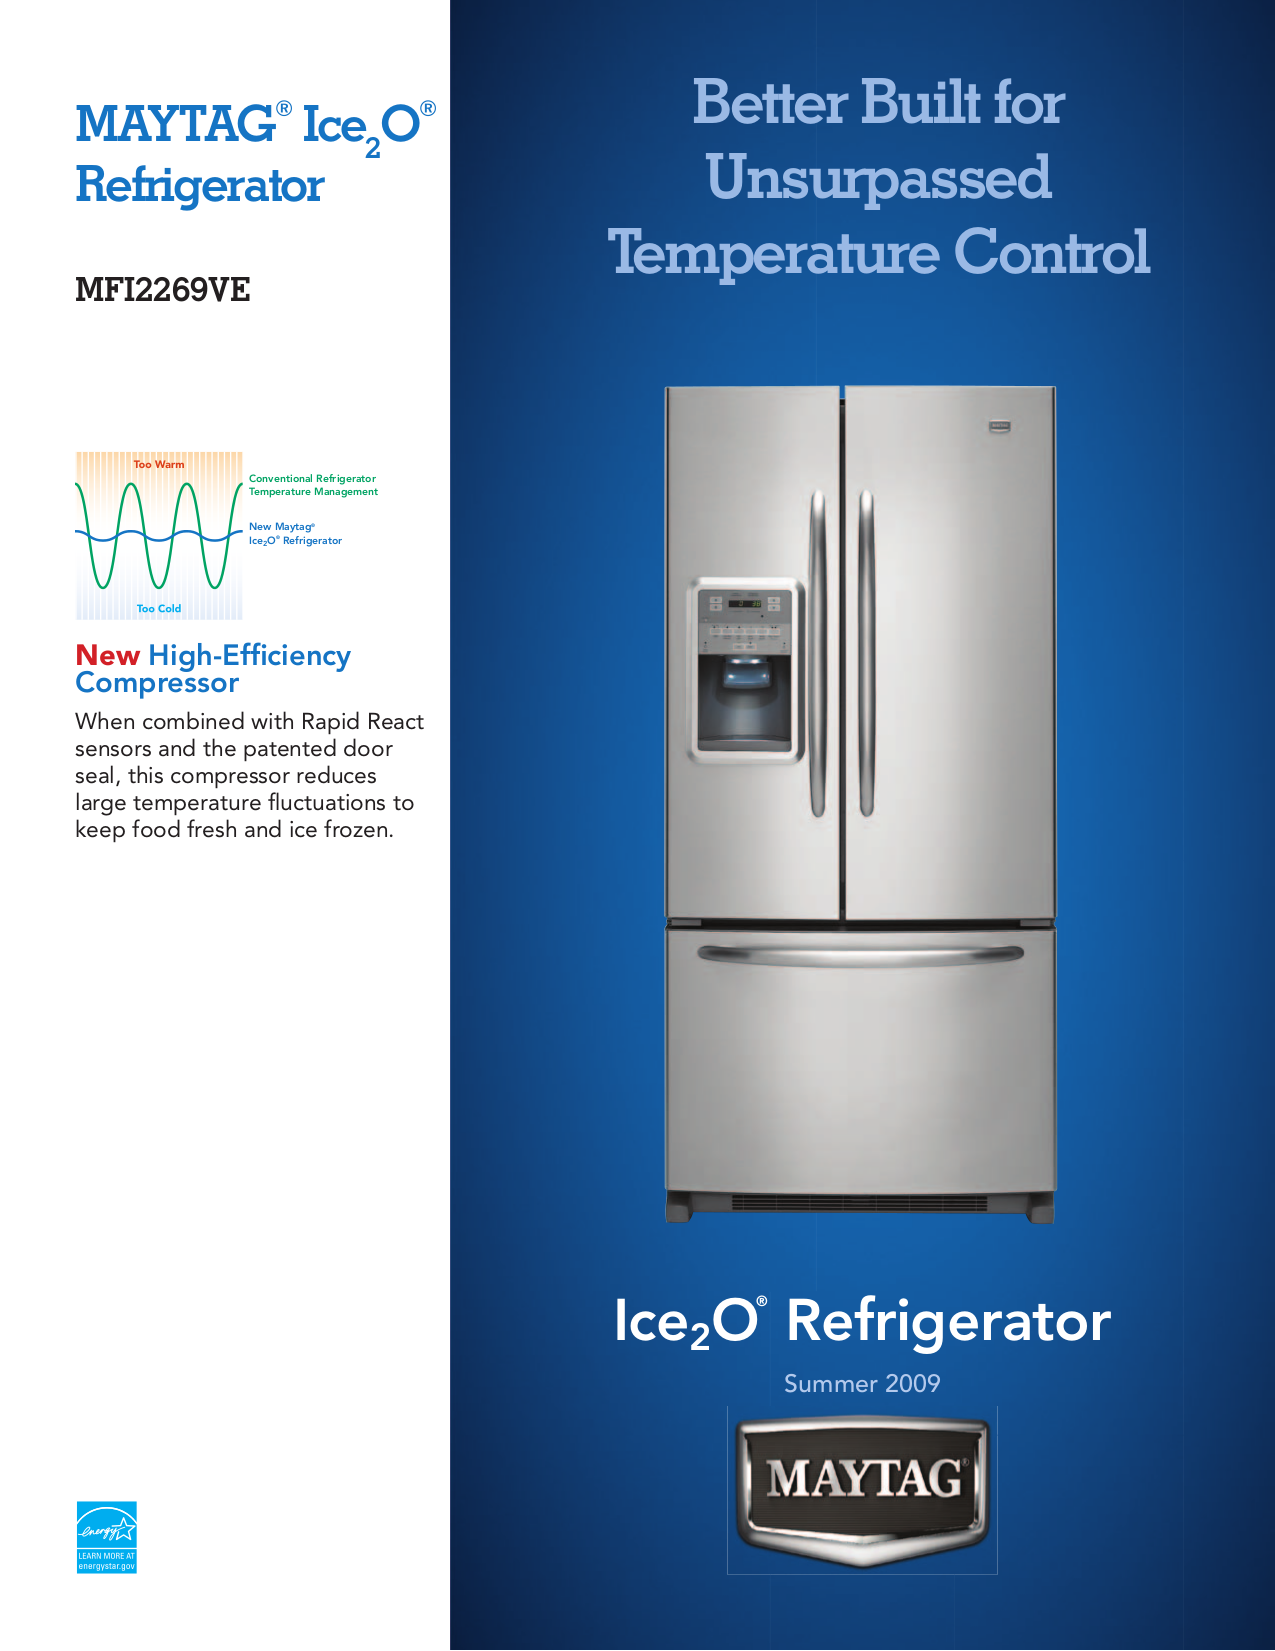 Download Free Pdf For Maytag Mfi2269ve Refrigerator Manual Schematic